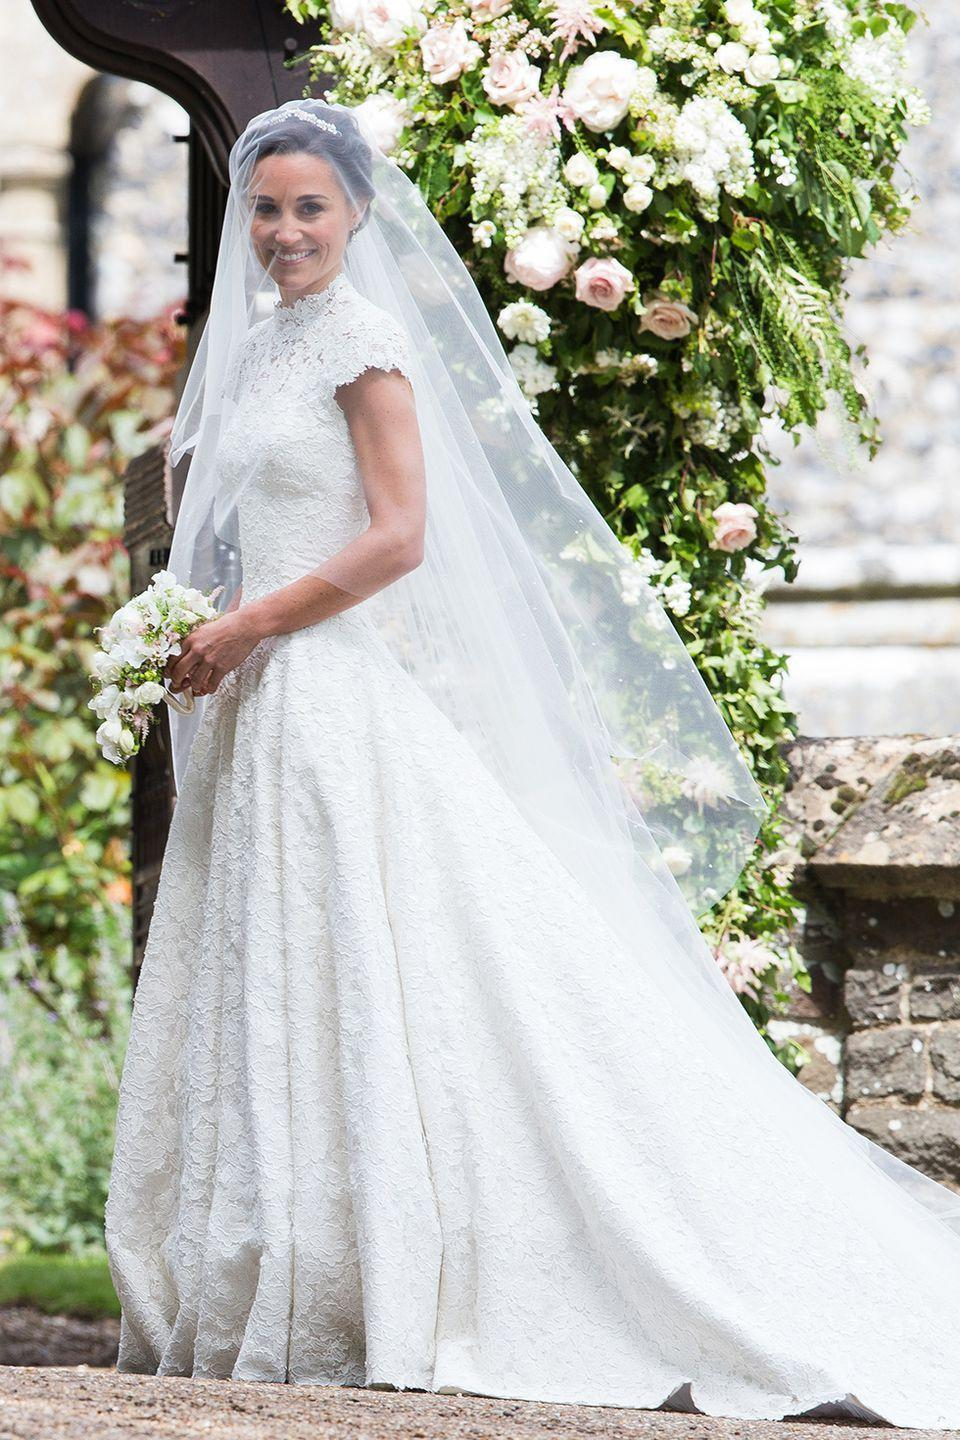 <p>Pippa wore a custom Giles Deacon wedding gown with short sleeves that showed off her crazy-toned arms. The high lace neck and train drew comparisons to older sister Kate's 2011 wedding gown.</p>